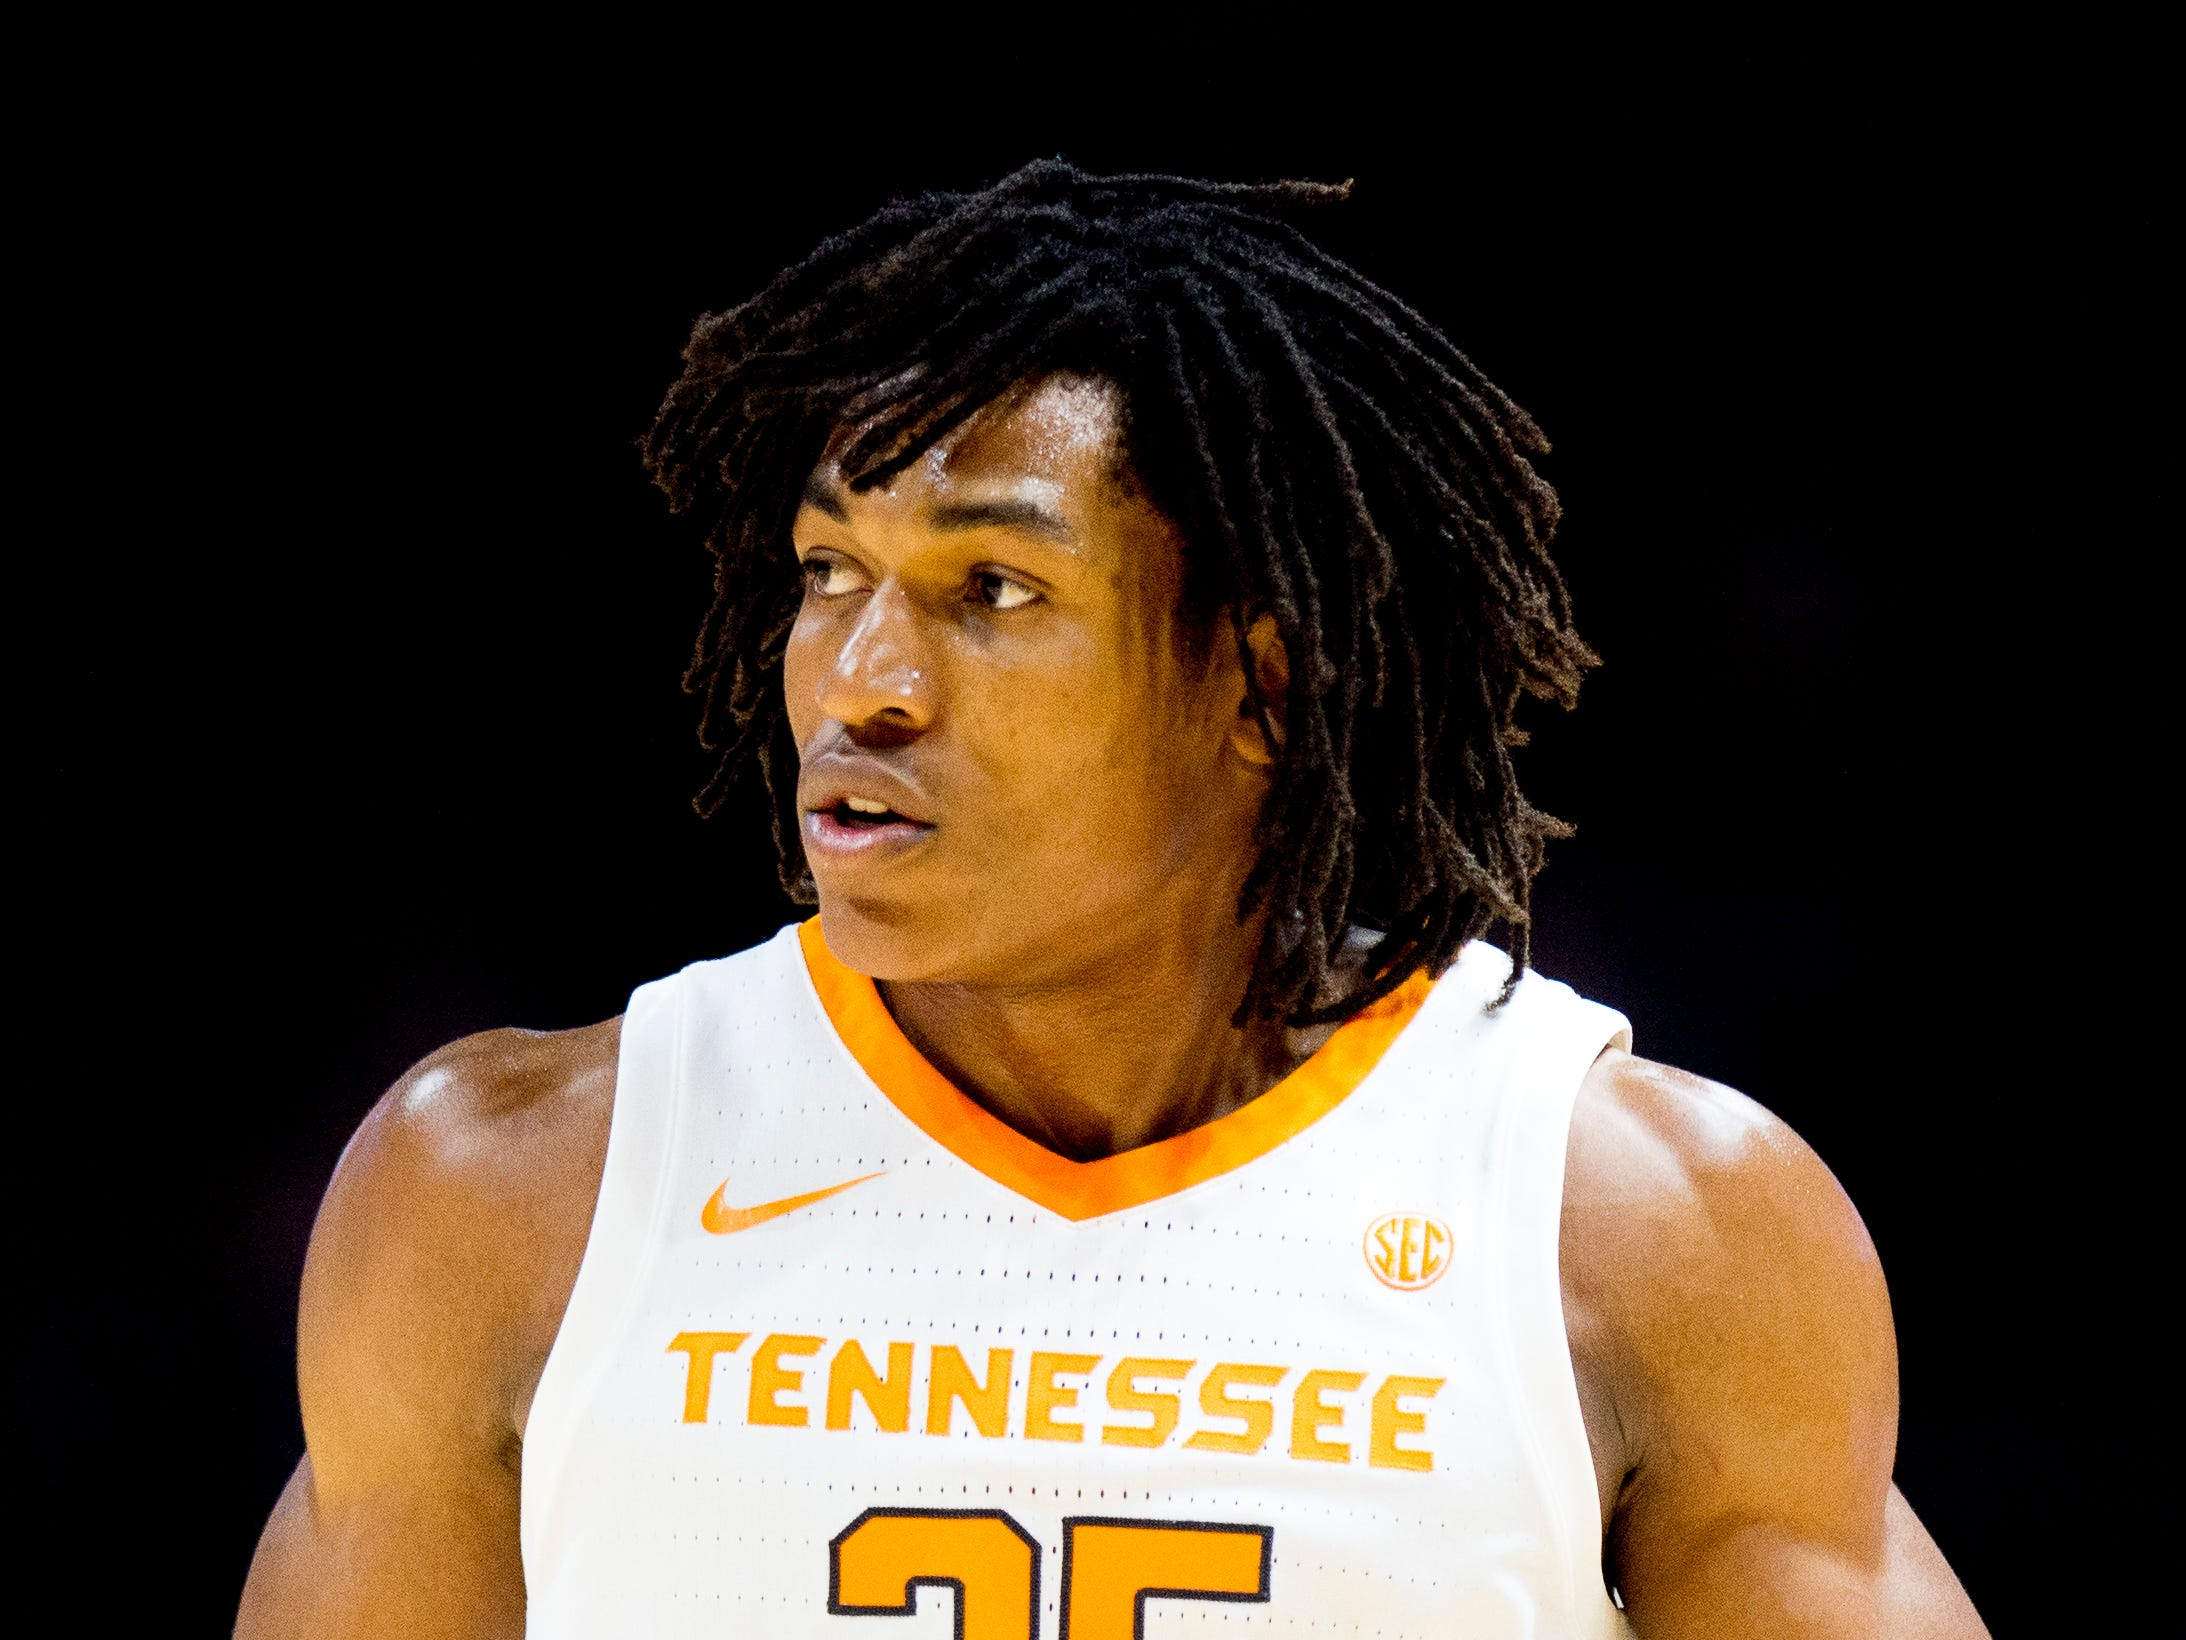 Tennessee guard/forward Yves Pons (35) runs down the court during a game between Tennessee and Tusculum at Thompson-Boling Arena in Knoxville, Tennessee on Wednesday, October 31, 2018.